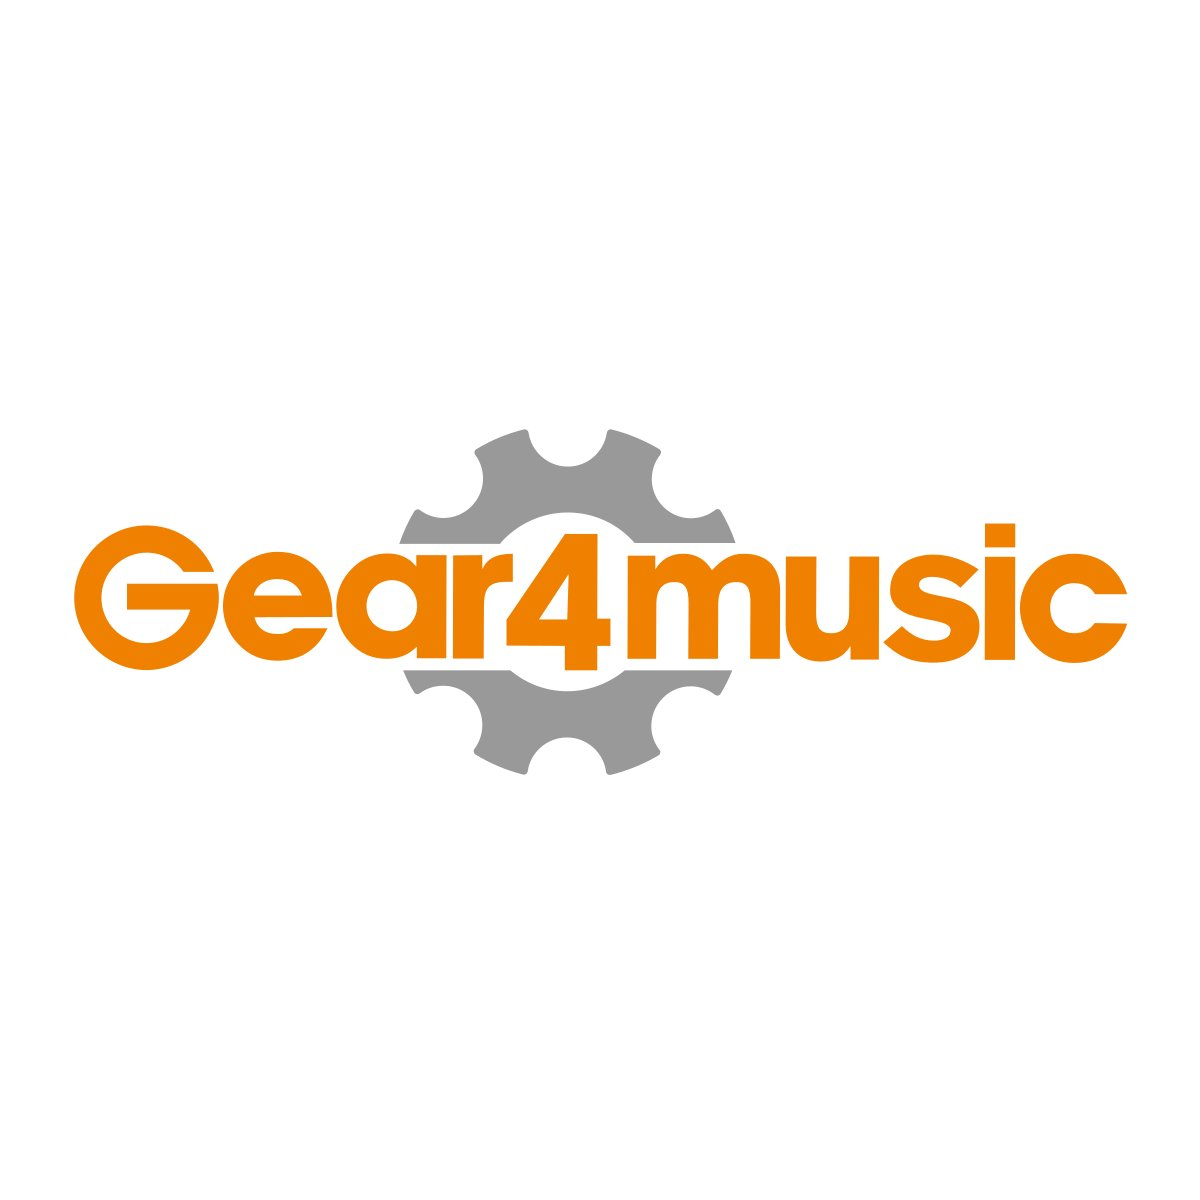 Altsaxophon-Set von Gear4music in hellgold